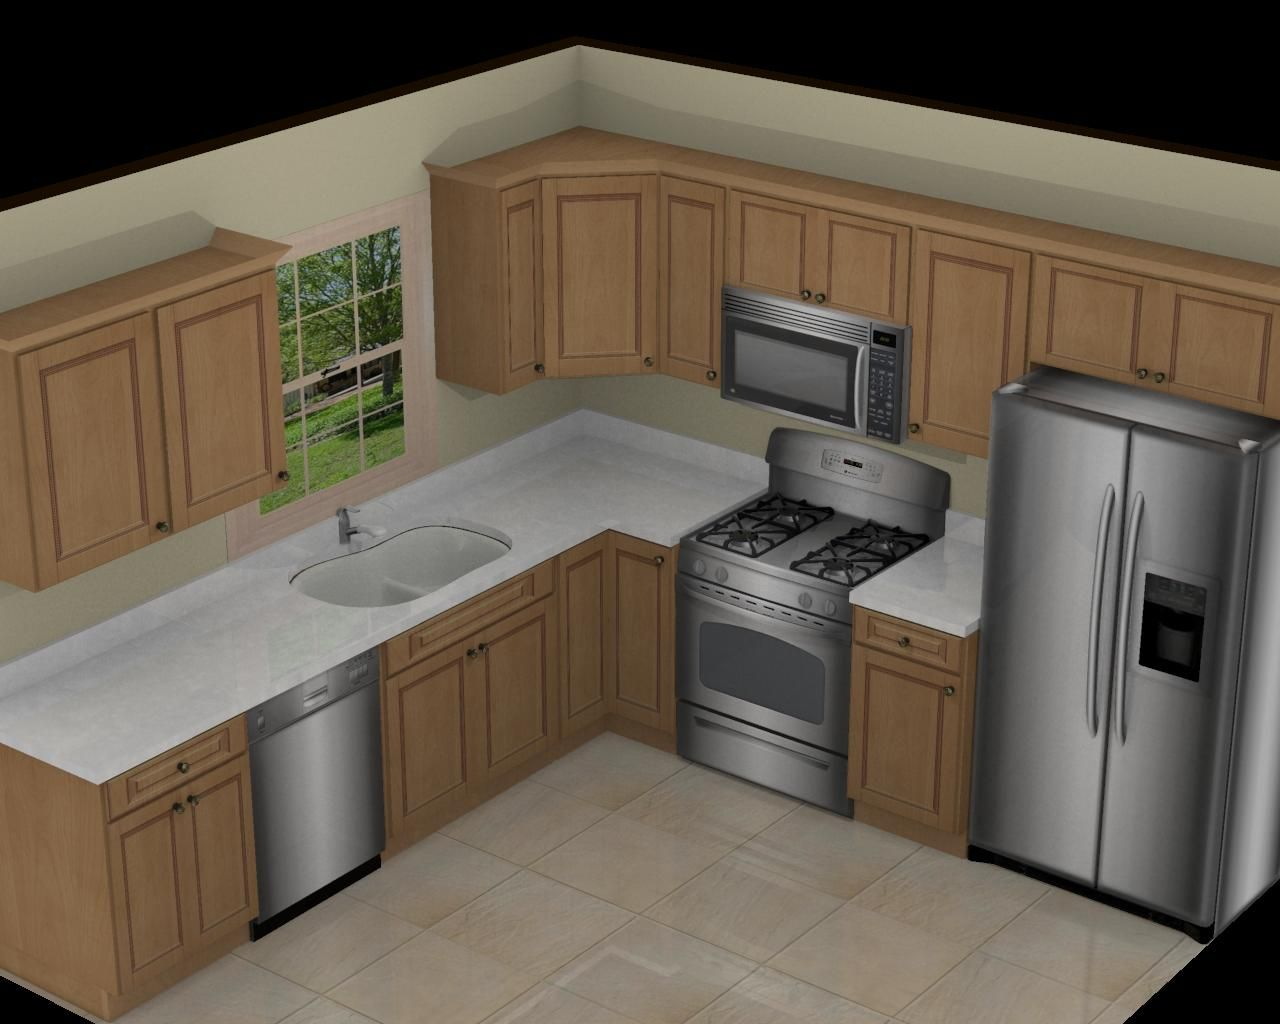 10x10 Kitchen Design Over Sink Light Pin By Linda Mann On My Little Houses Pinterest Best Ideas About X Layouts Square Layout